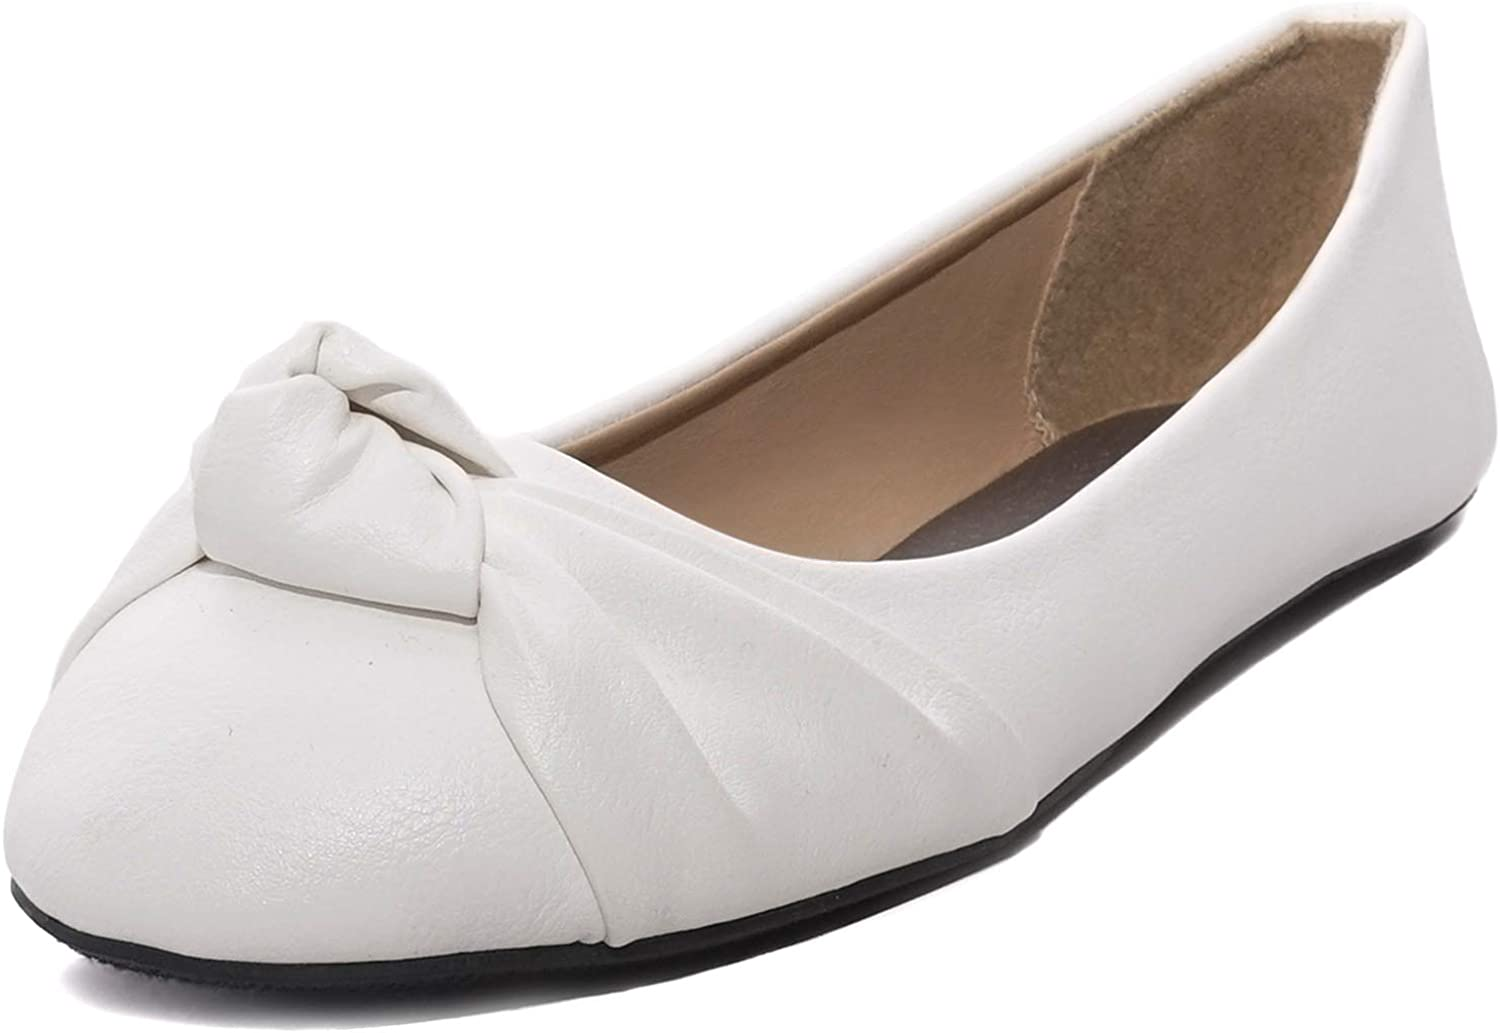 Women's Knotted Front Canvas Round Toe